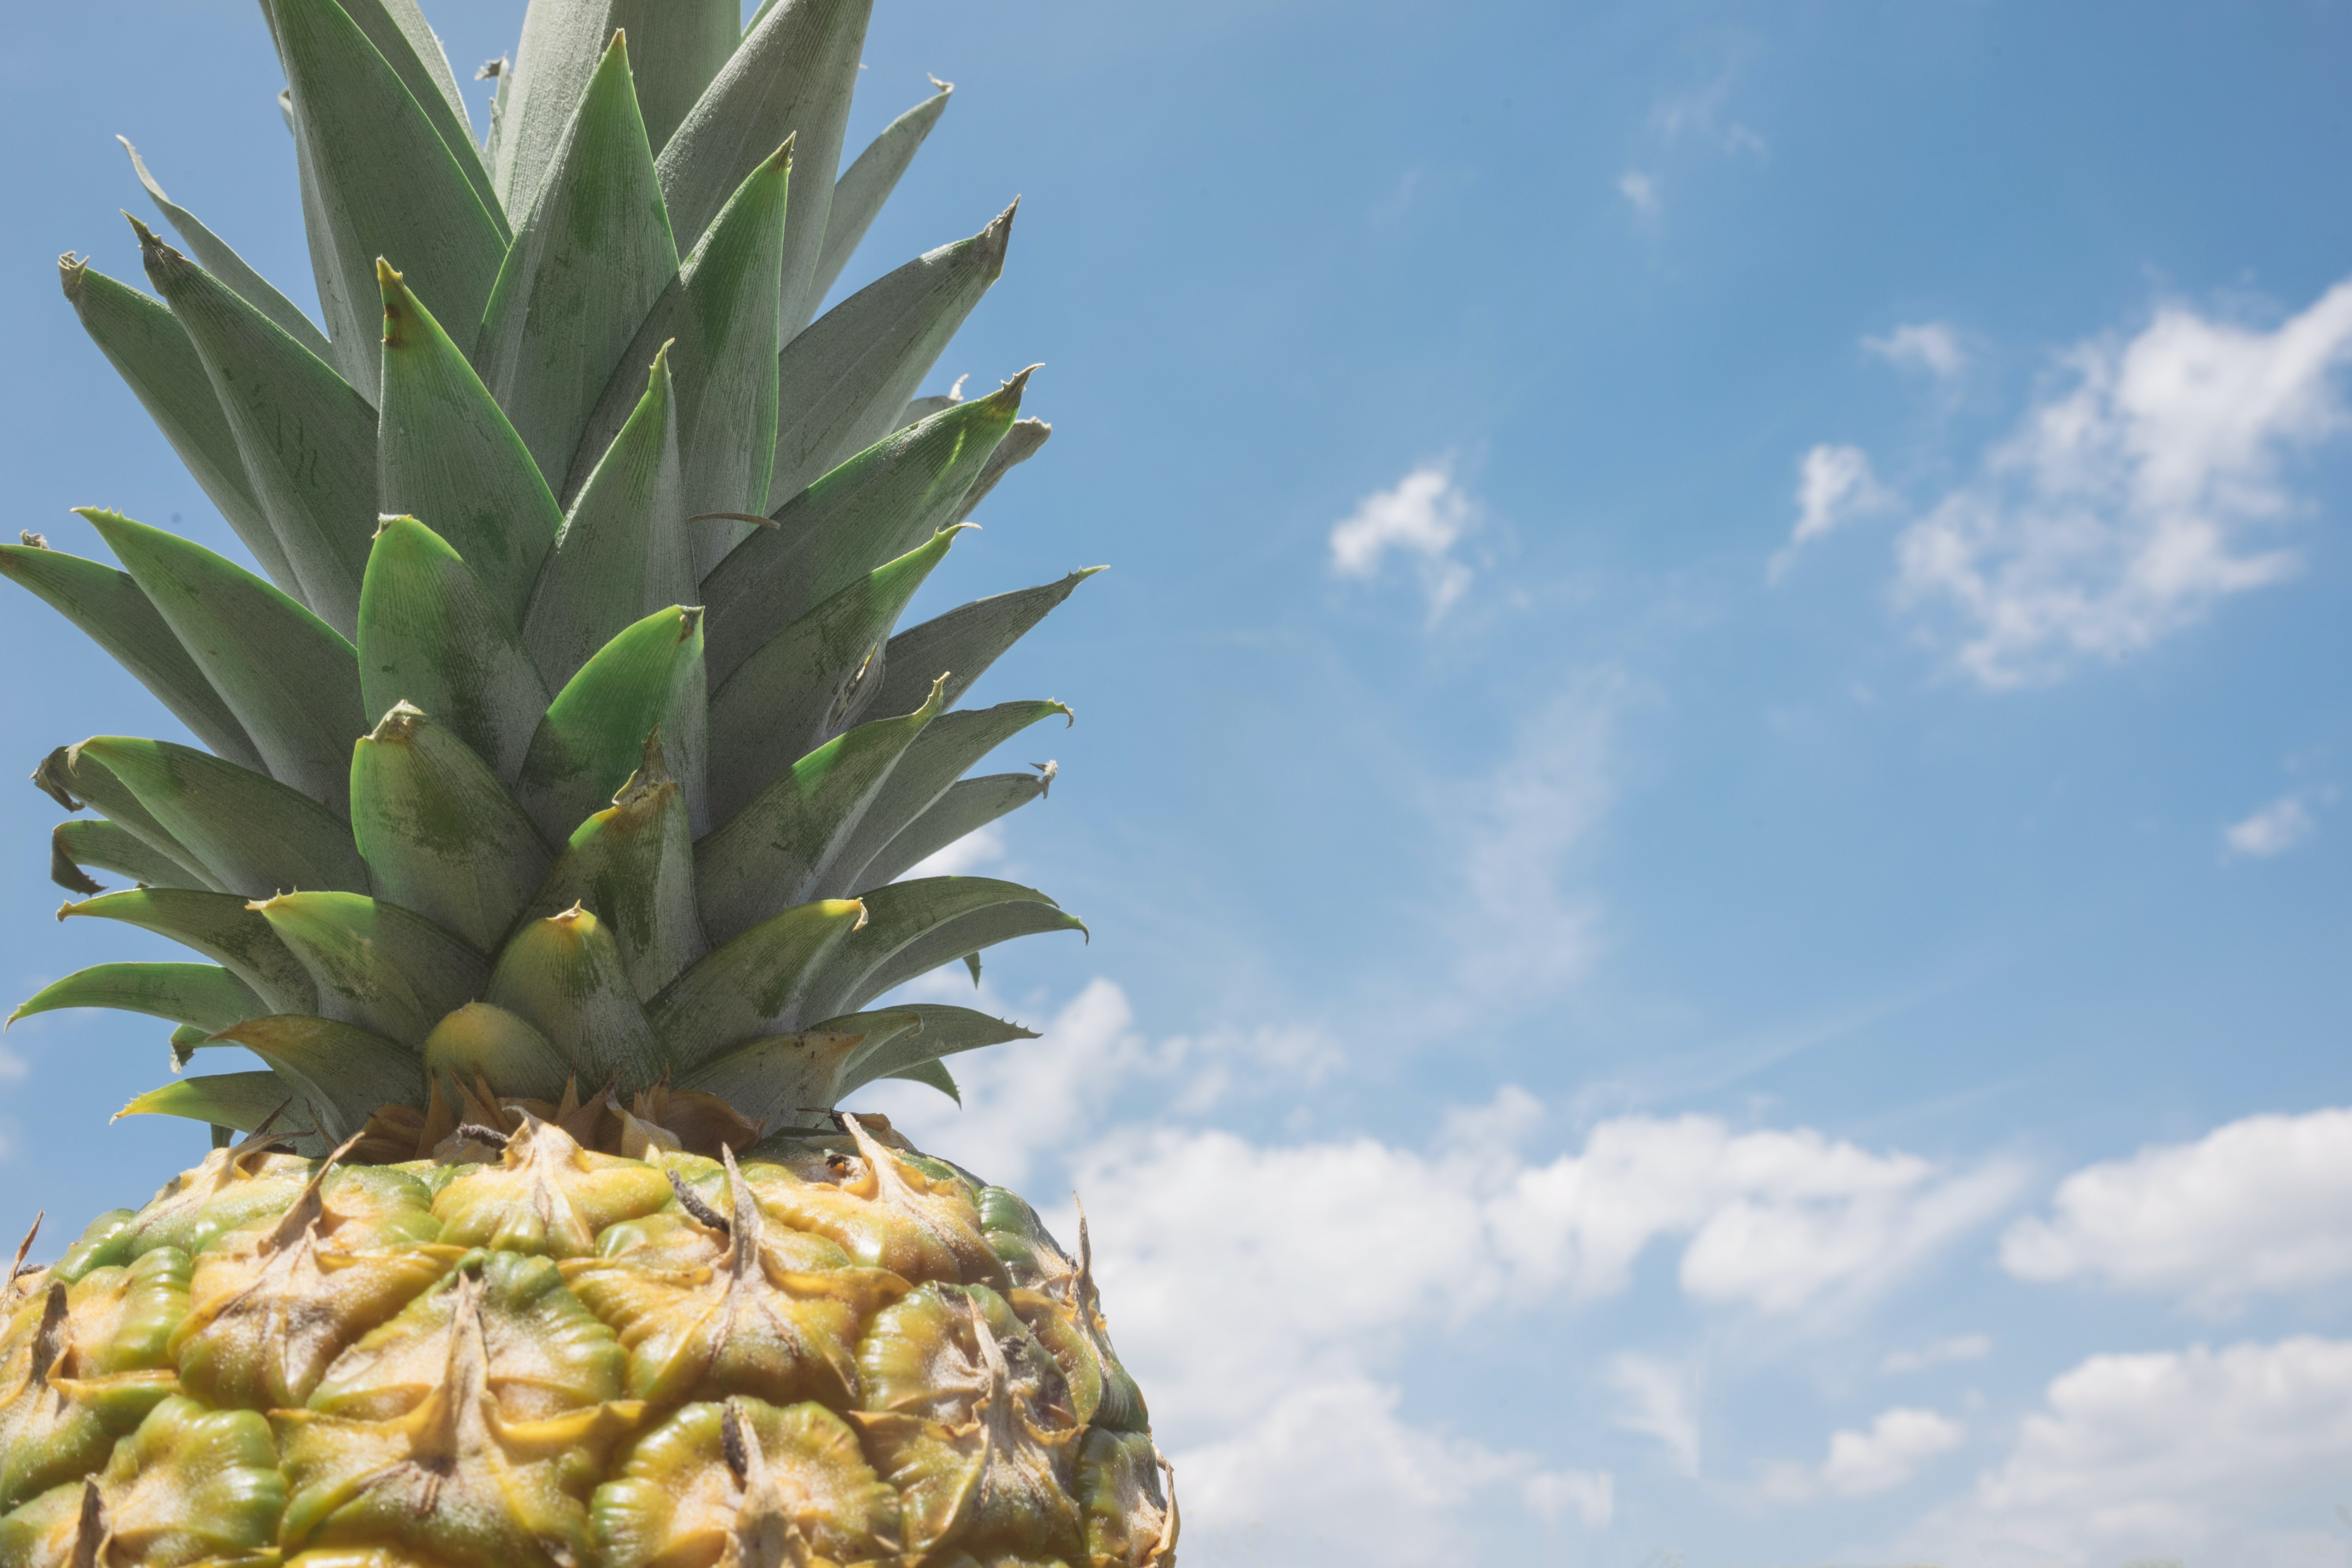 High shot of a pineapple and its green top against a blue sky